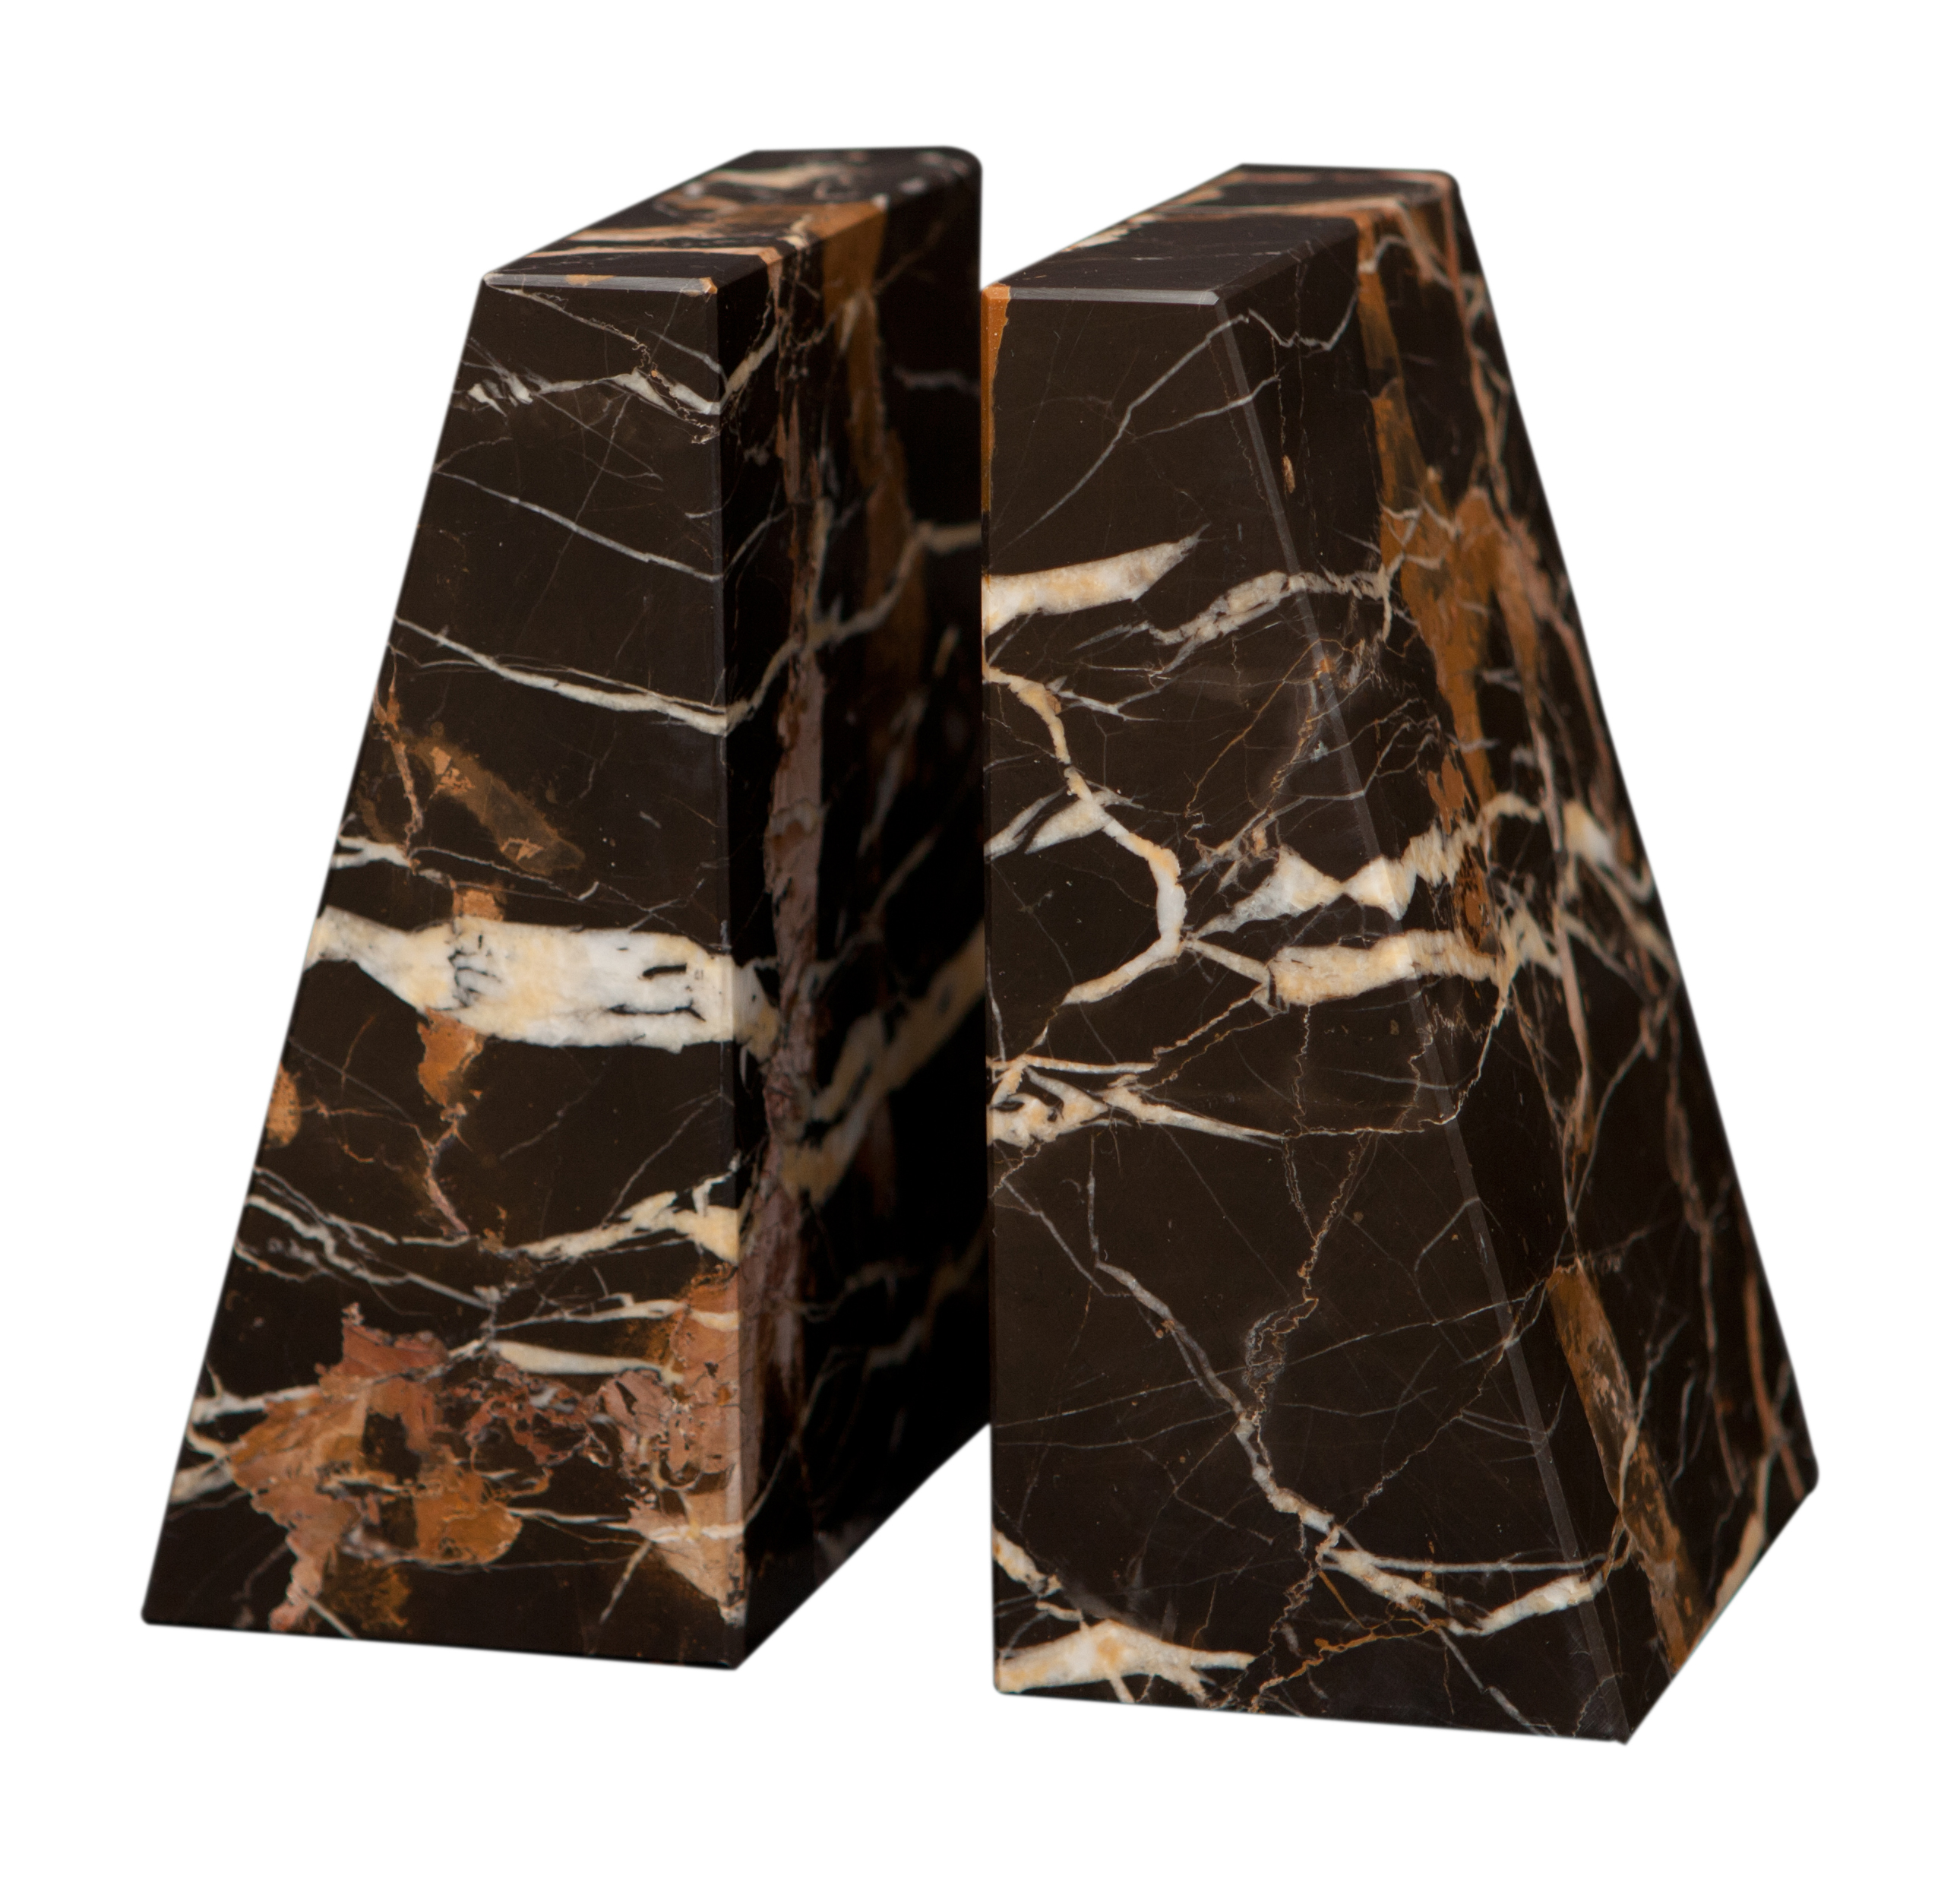 Black And Gold Marble Zeus Bookends